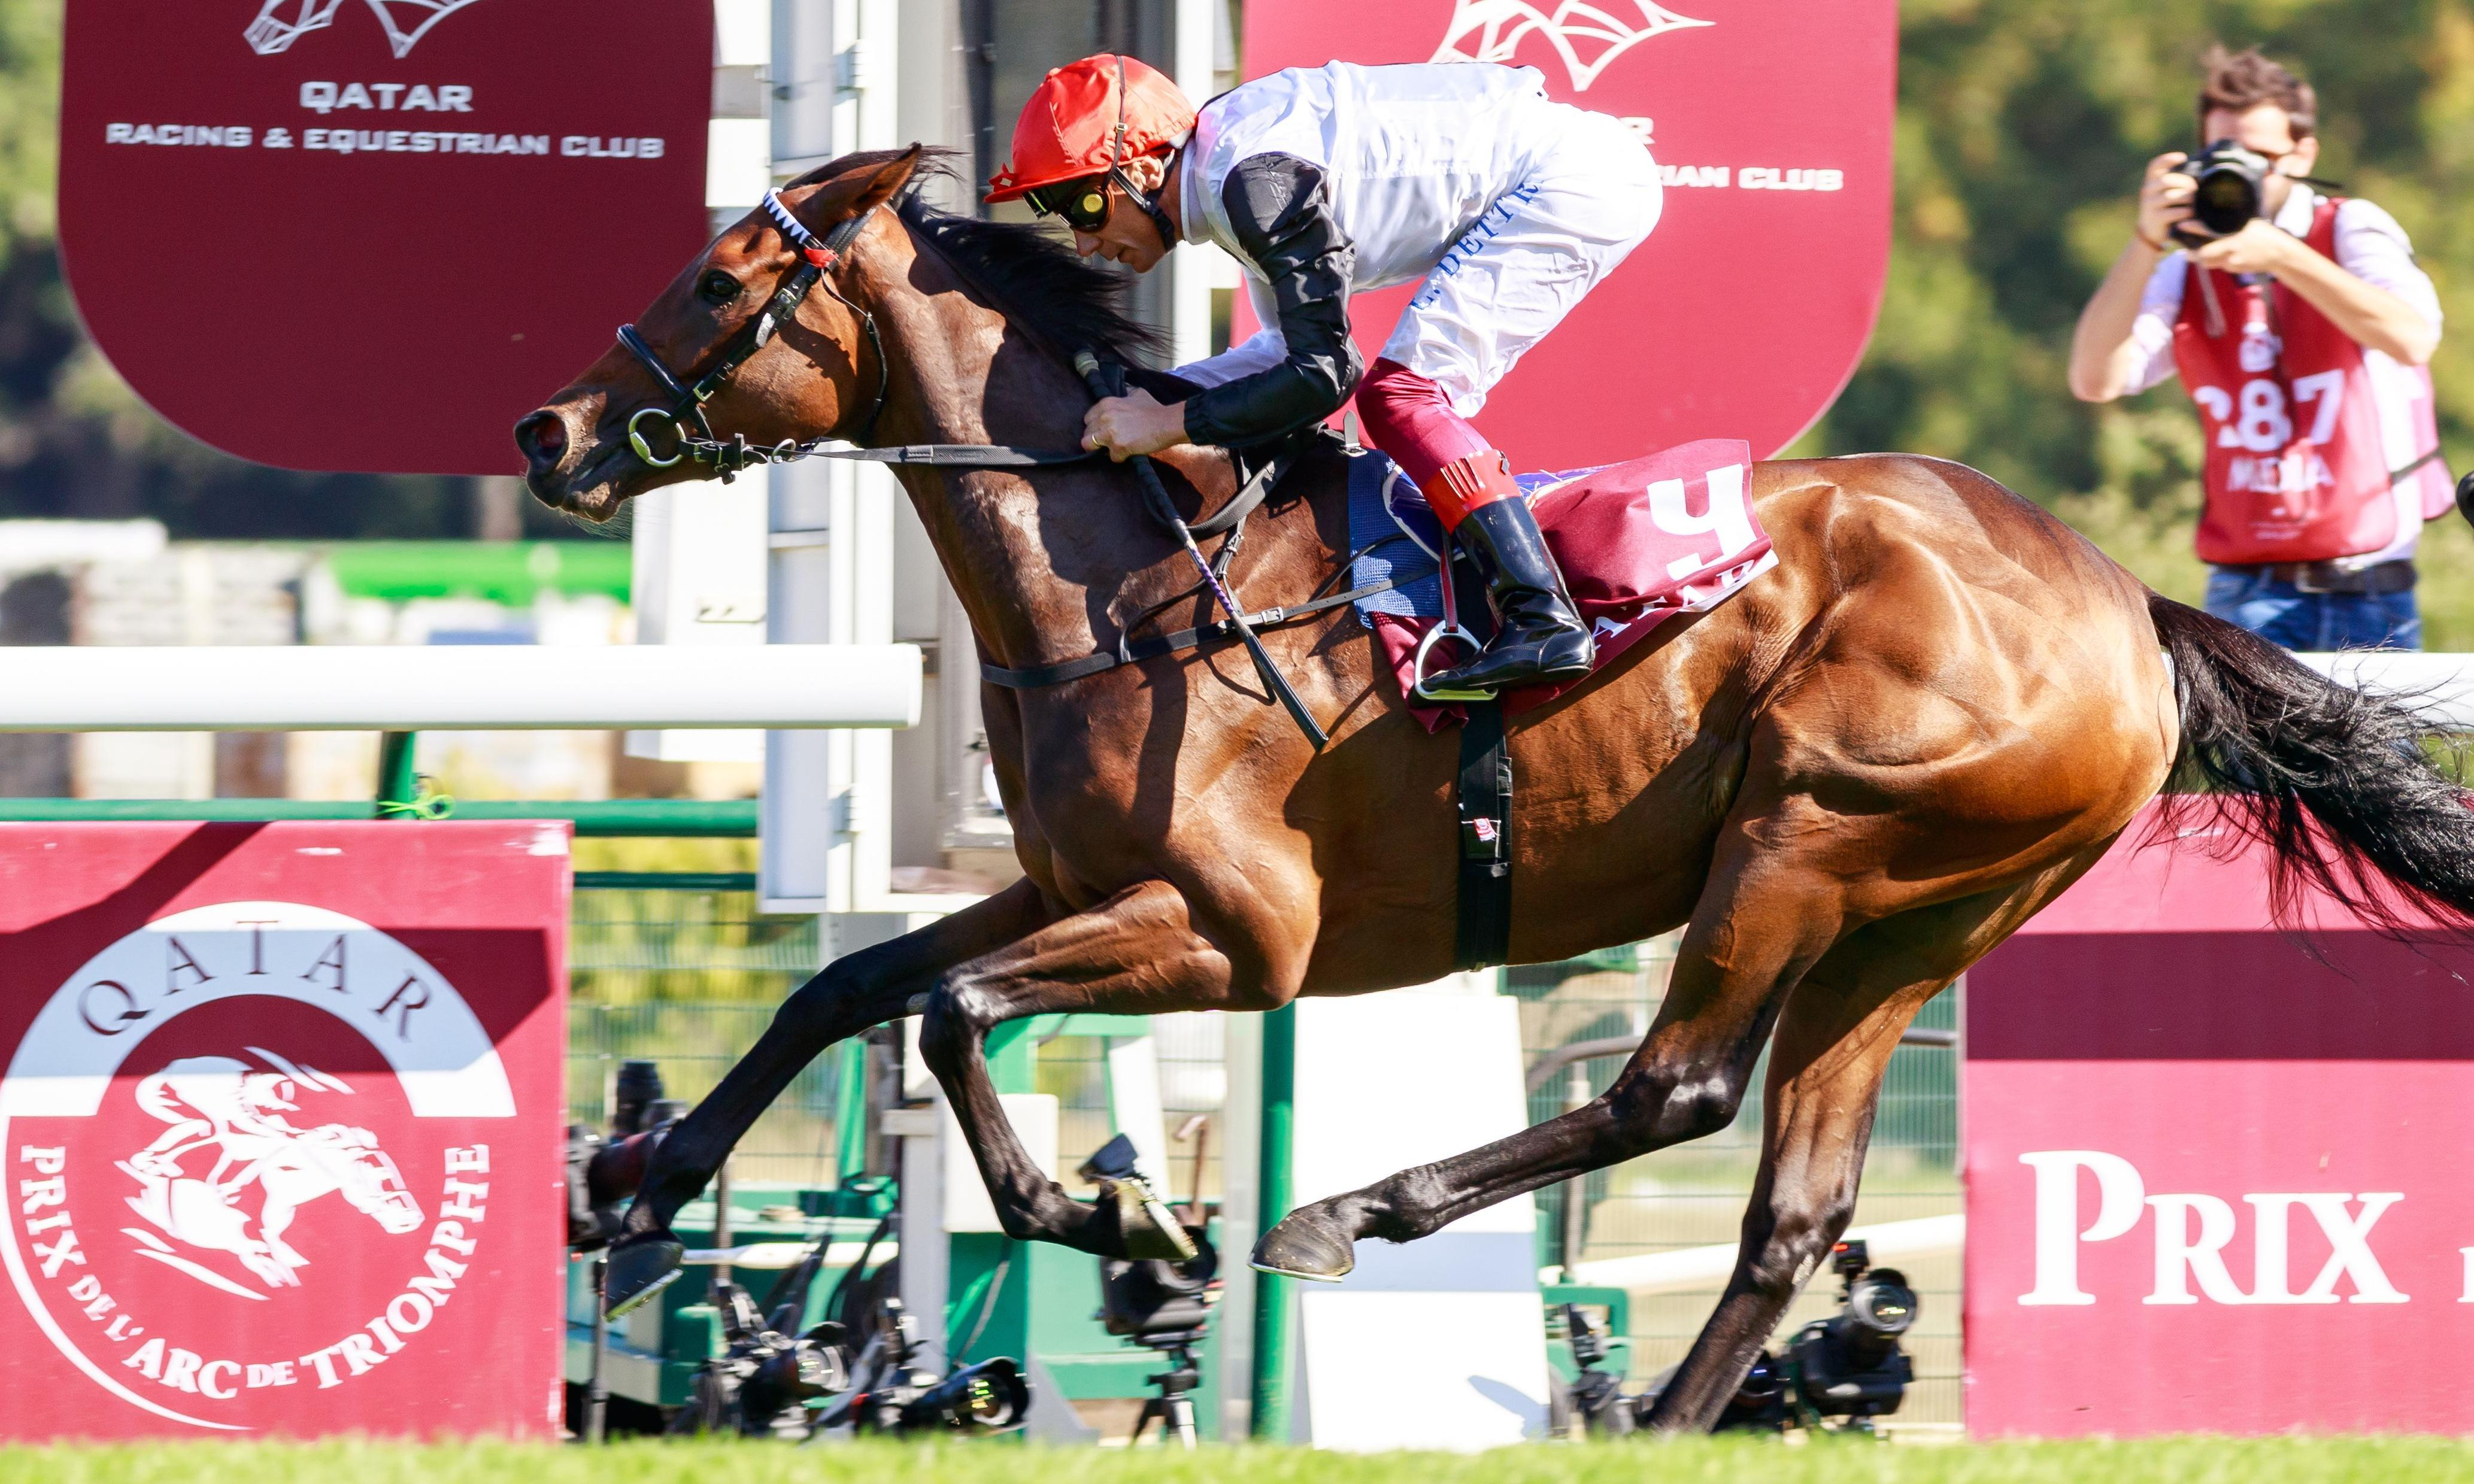 Frankie Dettori at his best as he guides Star Catcher to Prix Vermeille win